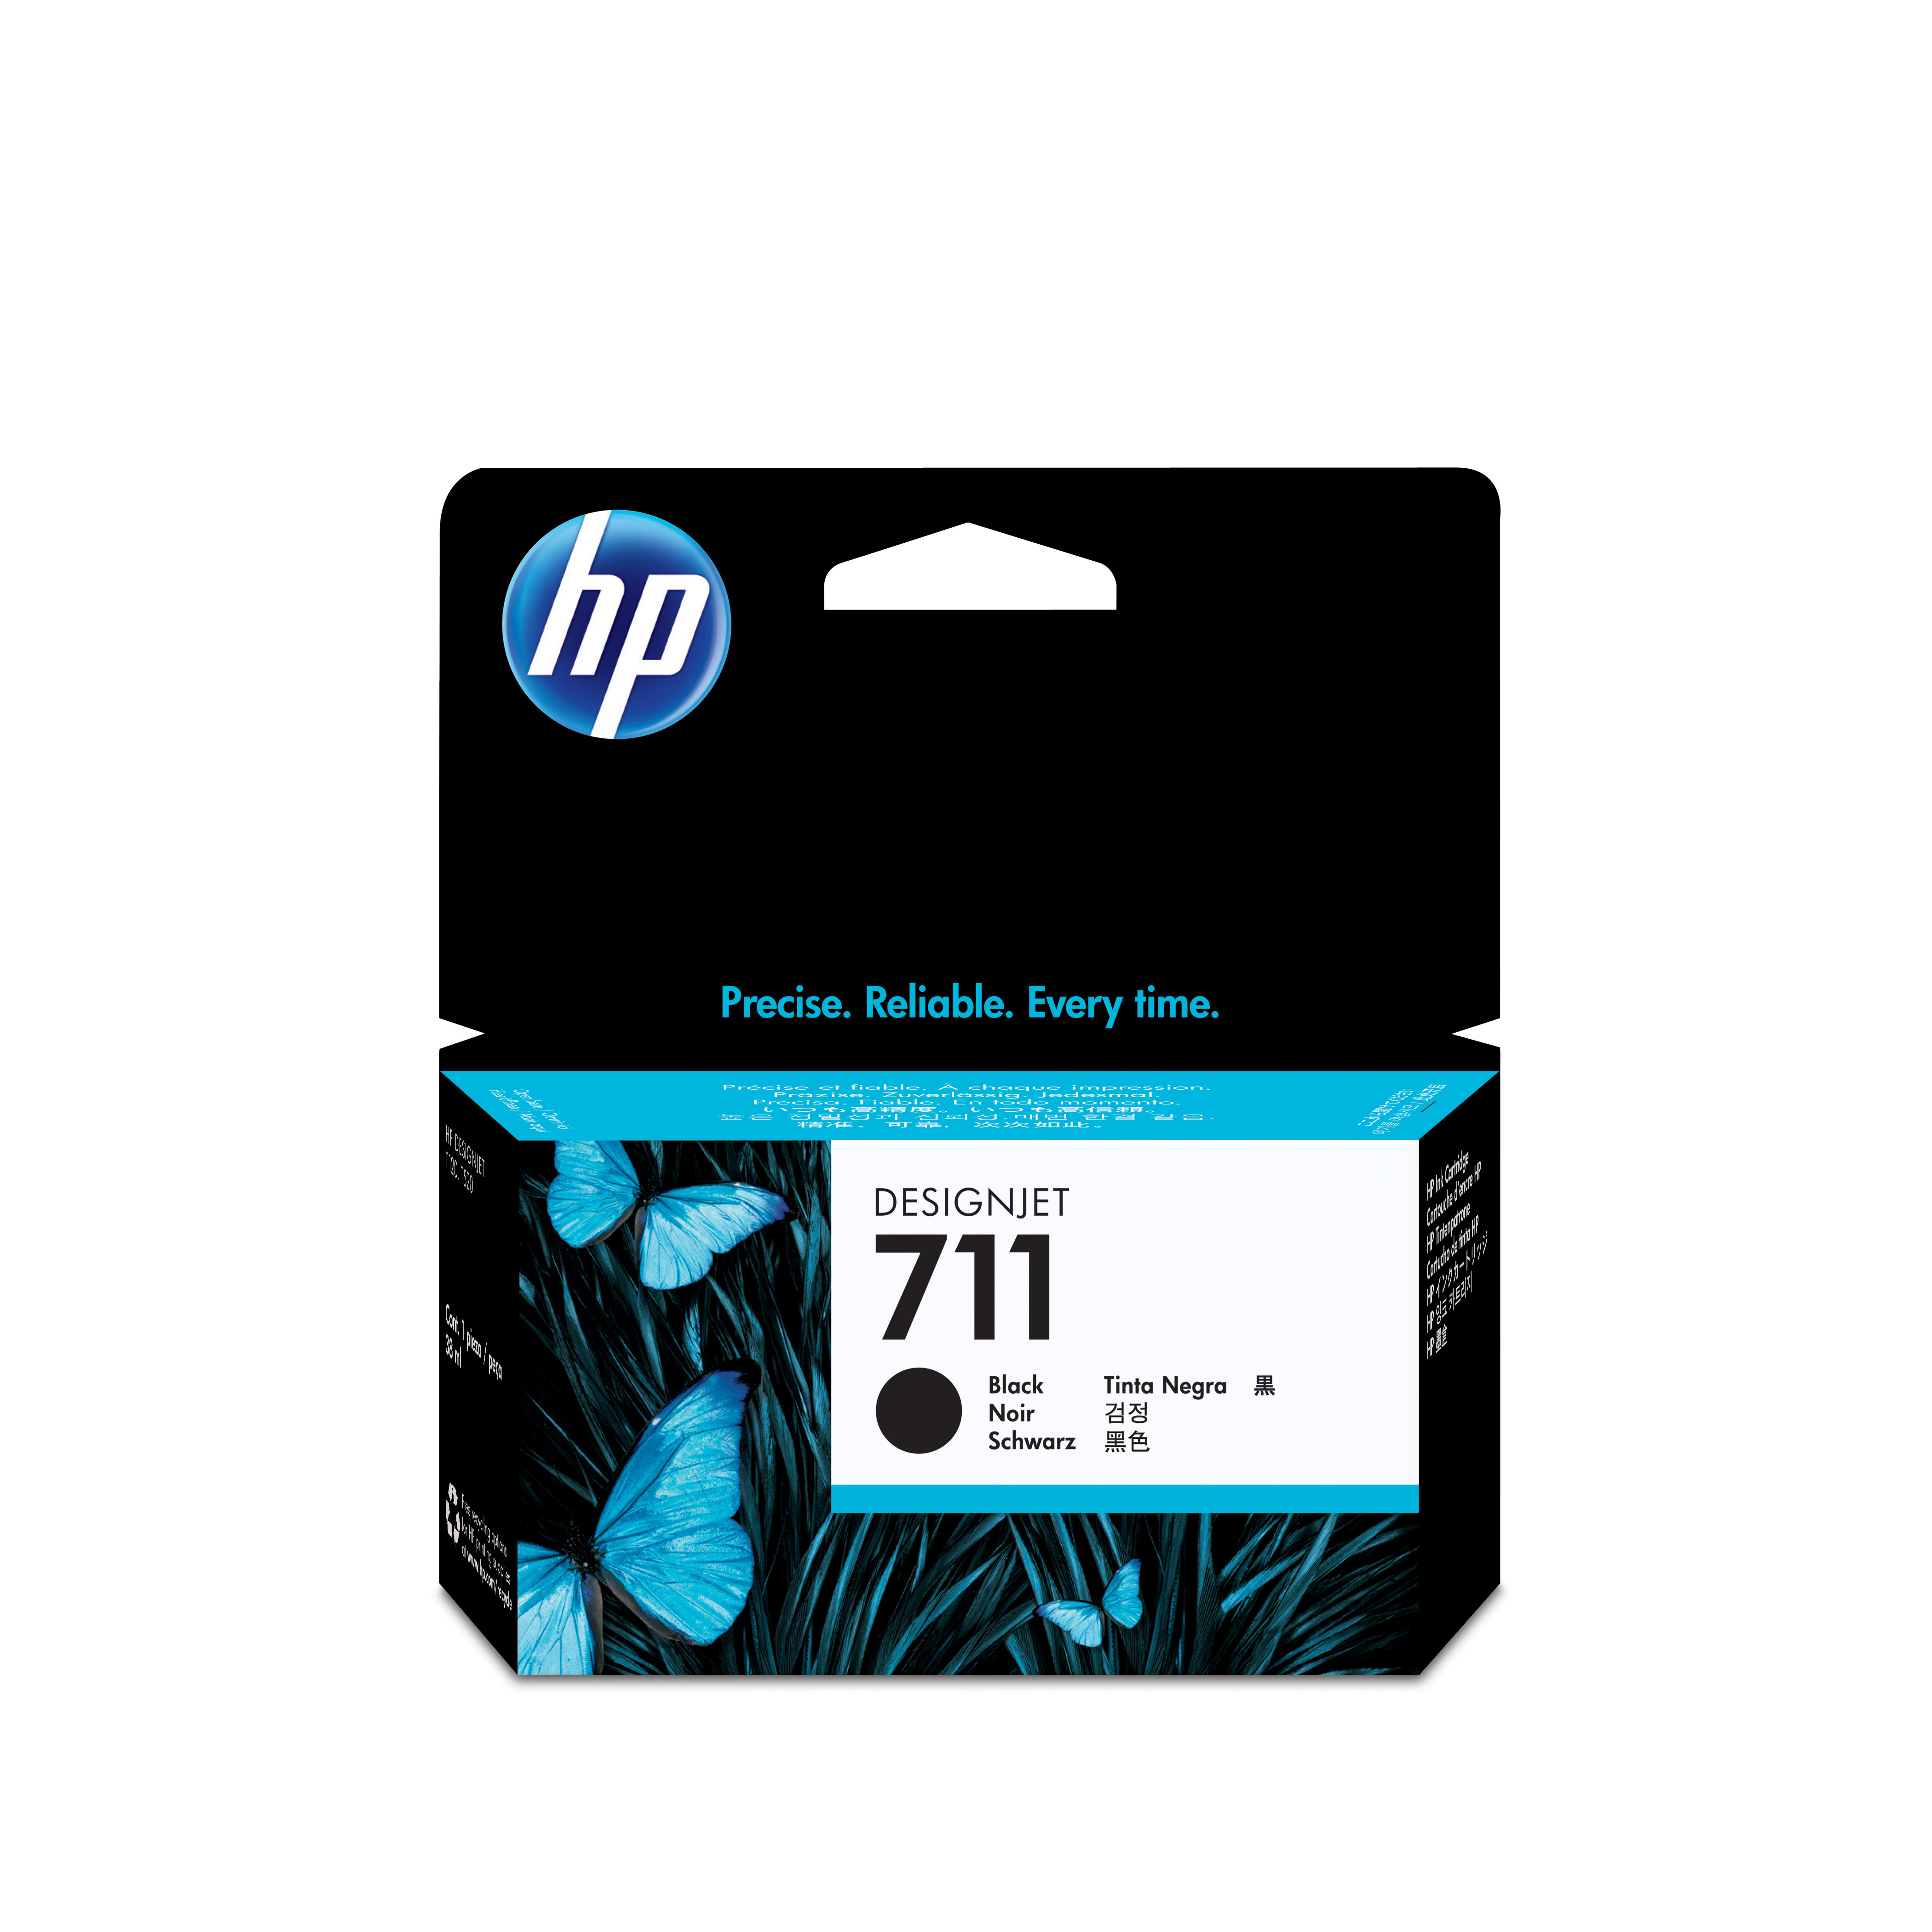 CZ129A Hp HP 711 - Black - Original - Ink Cartridge - For DesignJet T120 EPrinter, T520 EPrinter - C2000